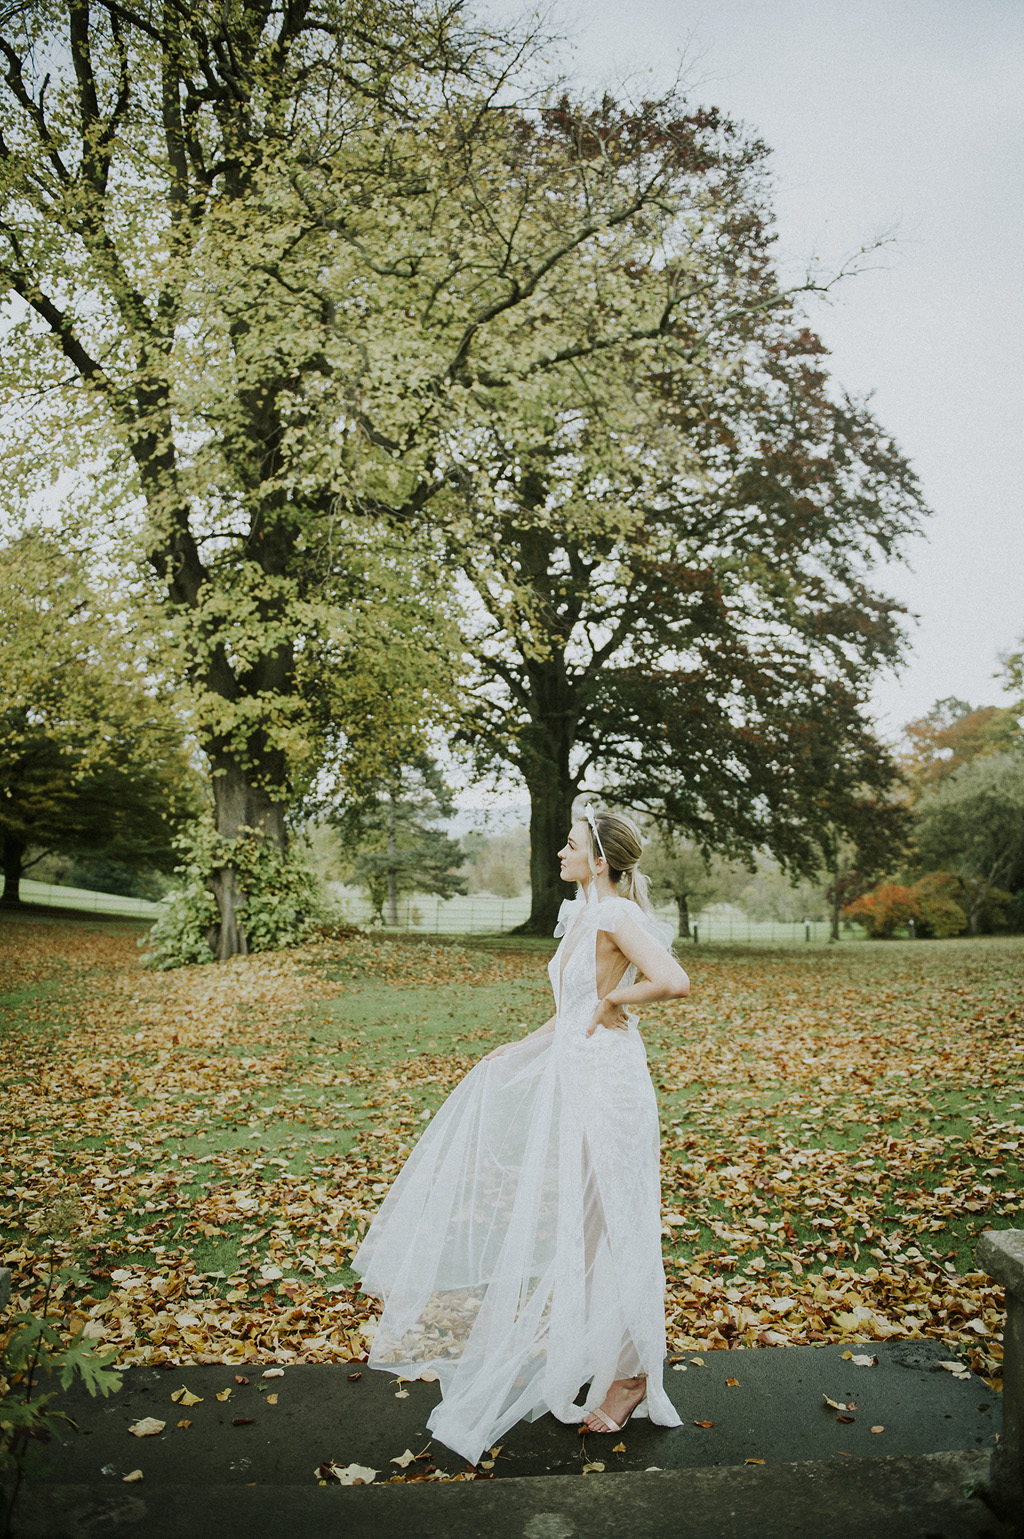 A girl in a modern wedding dress stands in a  park. There are autumn leaves on the grass, and mature trees in the background.